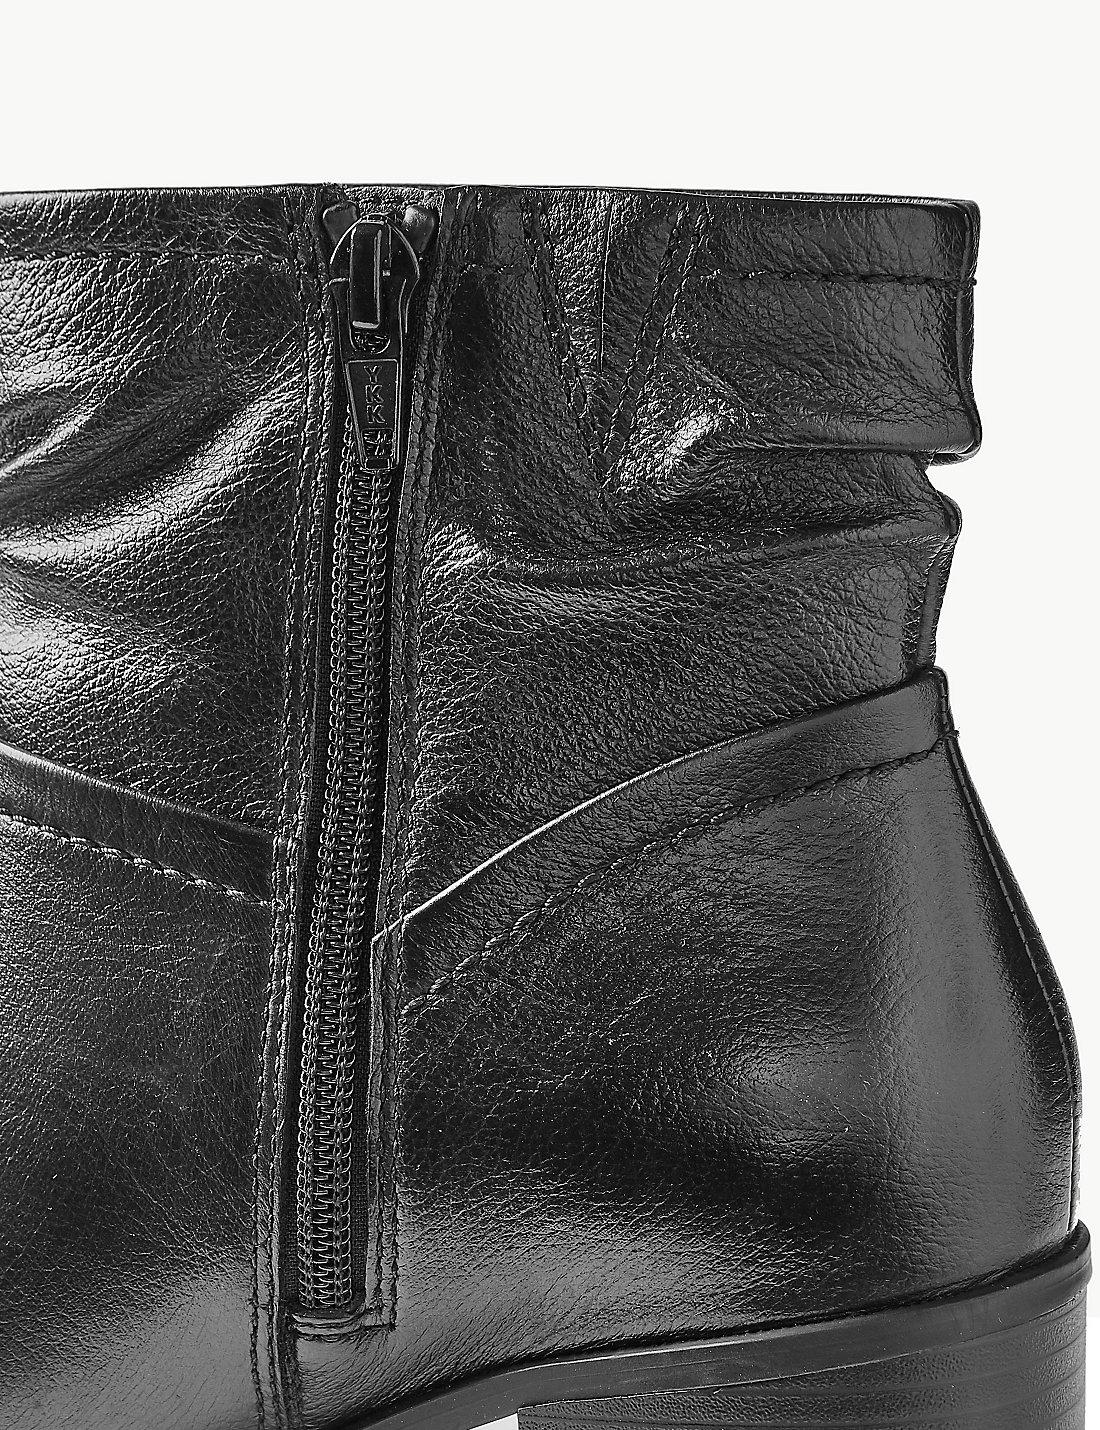 99cc1dbf385a Lyst - Marks & Spencer Leather Ruched Jeans Boots in Black